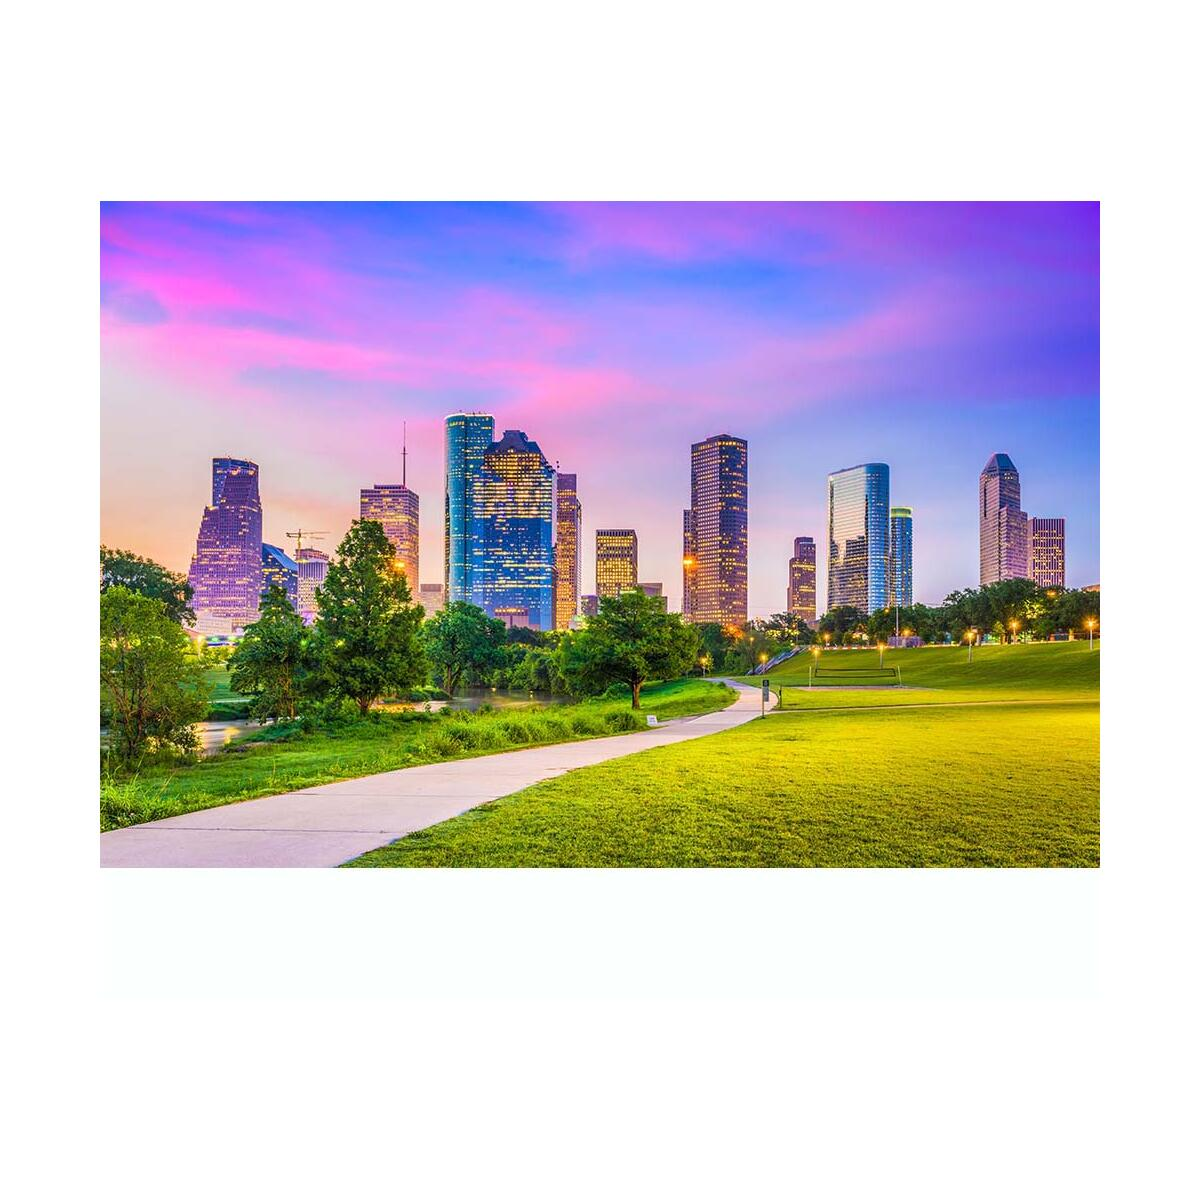 ElegArt Jigsaw Puzzles 1000 Pieces for Adults - Large 1000-Piece Puzzle for Kids with City Skyscrapers Theme - 27.56 x 19.69 Inches Cool Adult Jigsaw Puzzle - Non-Toxic 1000 Piece Family Puzzle Game